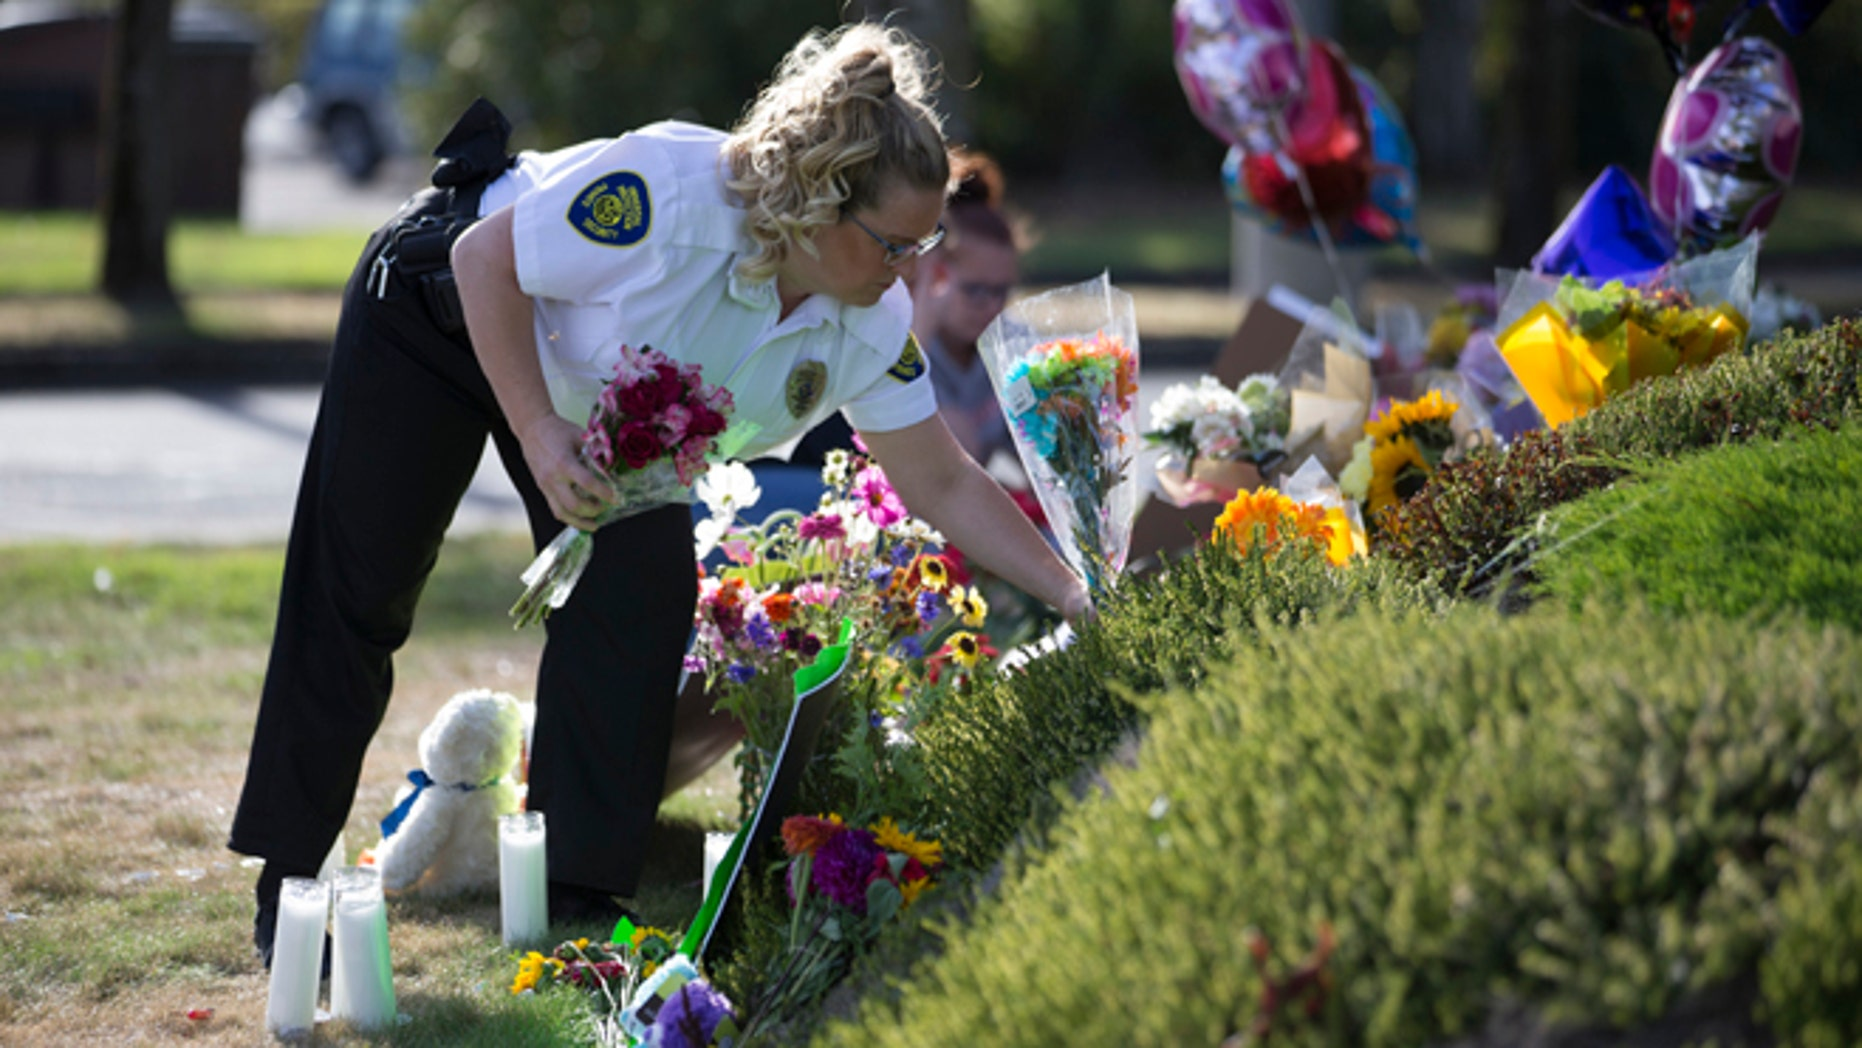 A security guard working at the Cascade Mall places flowers at a makeshift memorial on Sunday, Sept. 25, 2016, in Burlington, Wash., to the five victims killed in a shooting at the mall on Friday. The 20-year-old man suspected of killing the five people with a rifle at a Macy's makeup counter had a string of run-ins with the law in recent years, including charges he assaulted his stepfather. (AP Photo/Stephen Brashear)